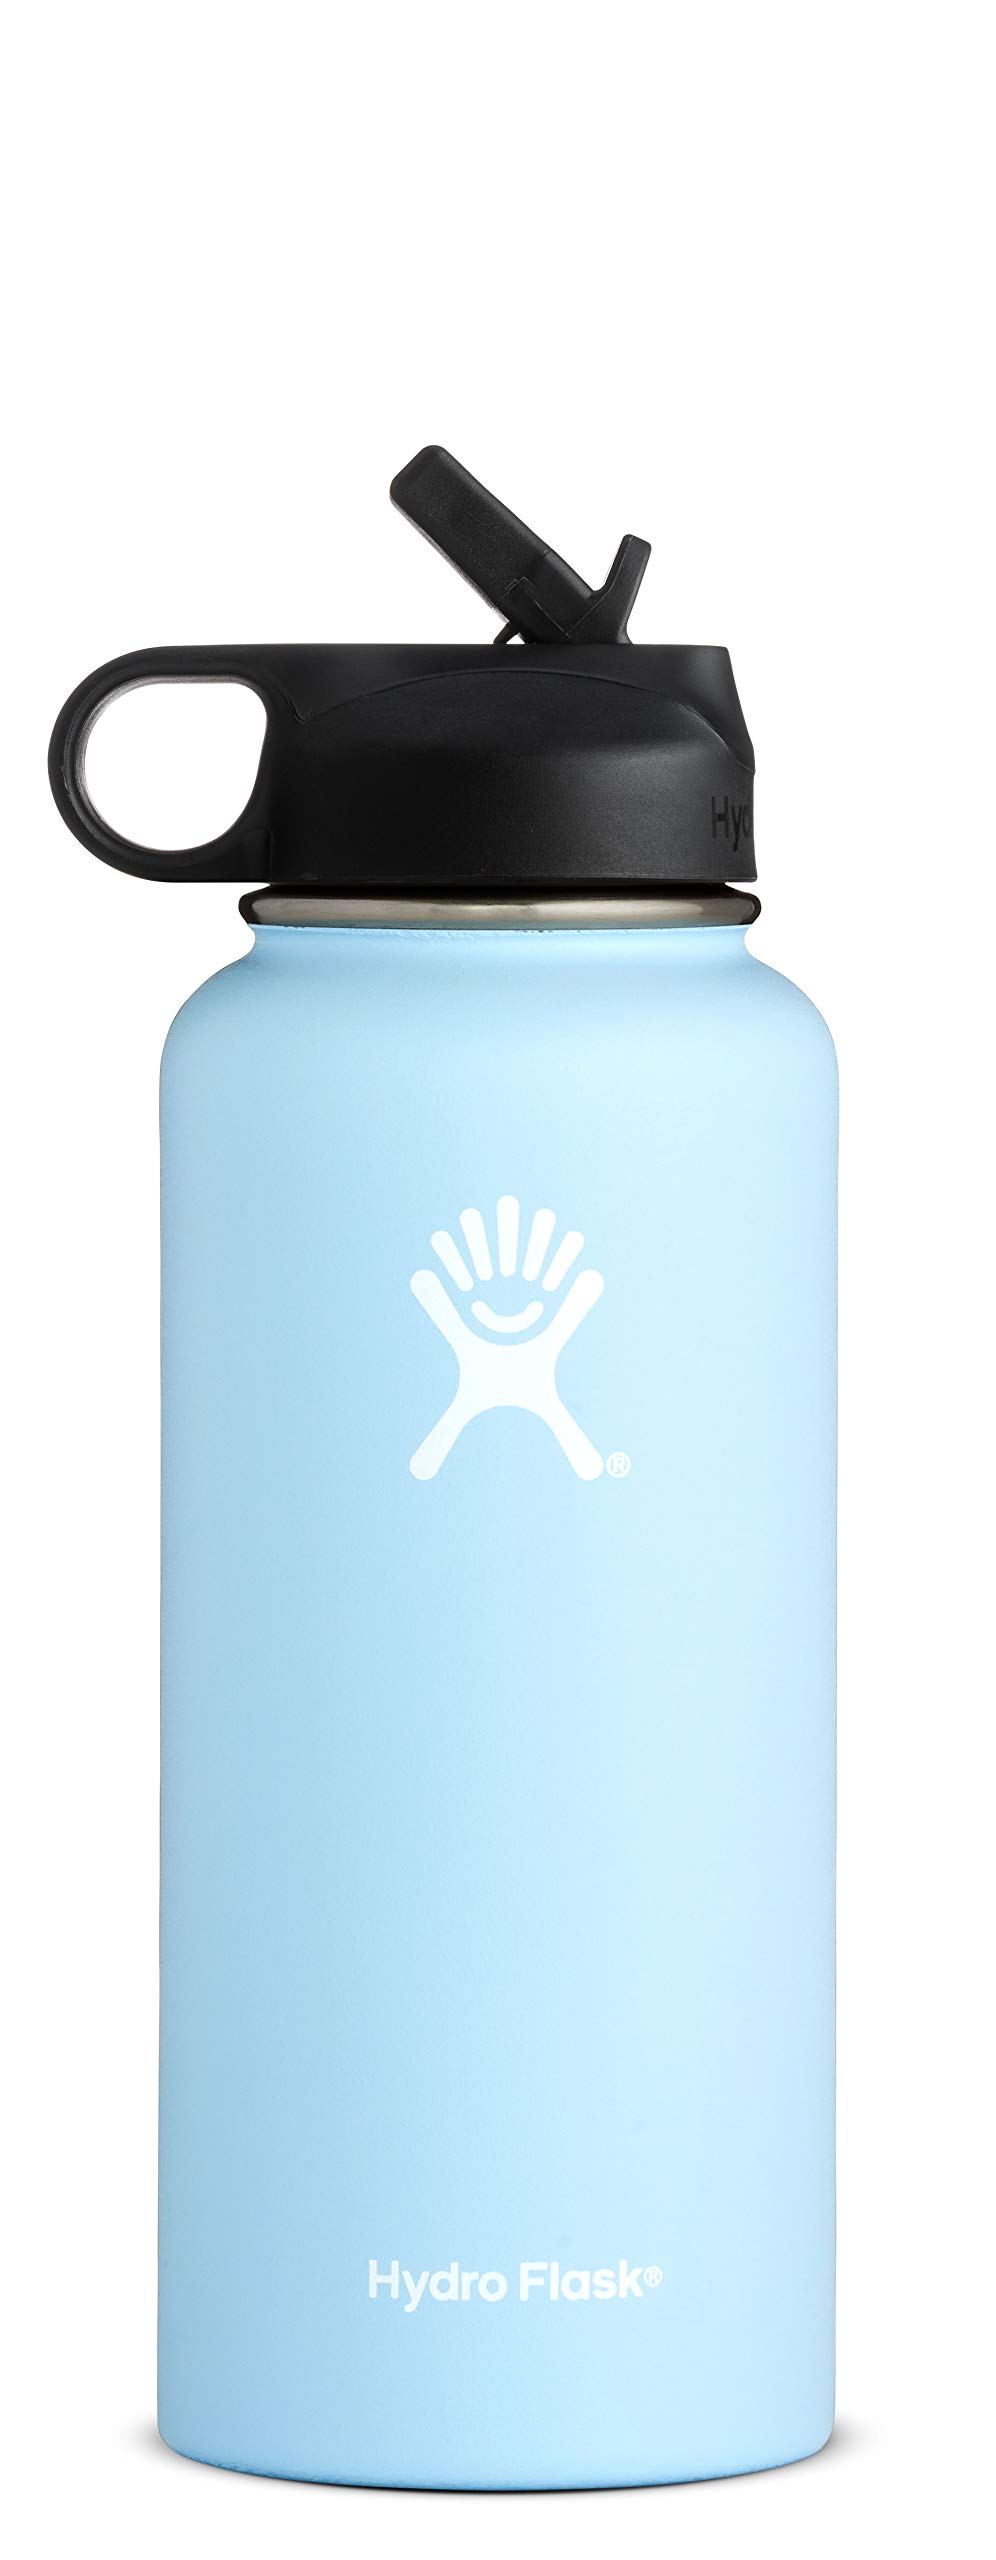 Hydro Flask Water Bottle - Stainless Steel & Vacuum Insulated - Wide Mouth with Straw Lid - 40 oz, Frost by Hydro Flask